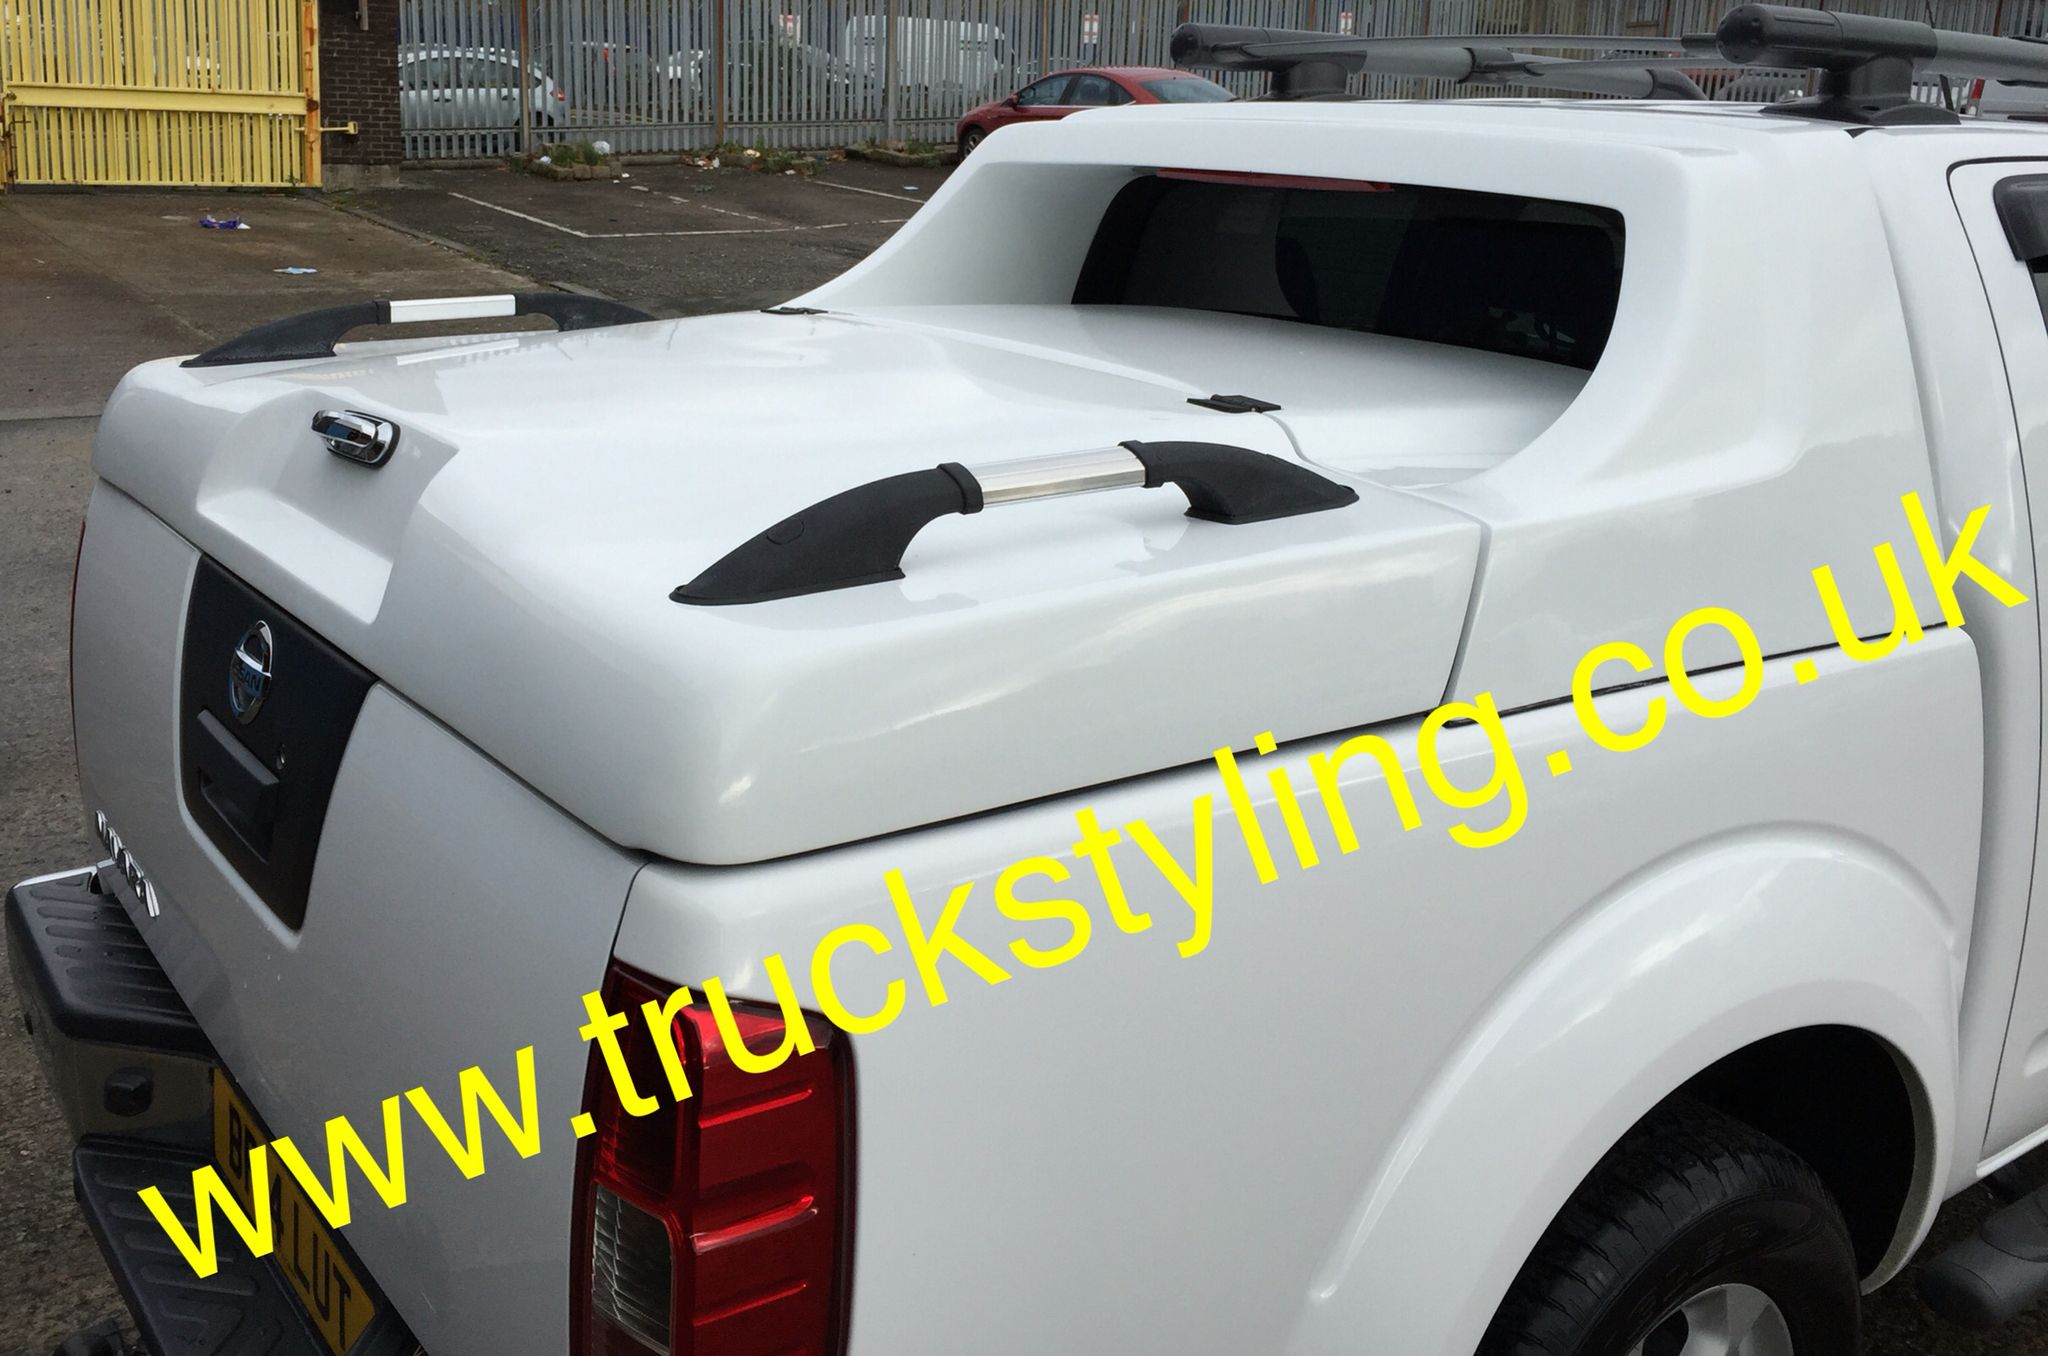 Nissan navara d40 hard top tonneau lid painted qm1 white comes with load bars as